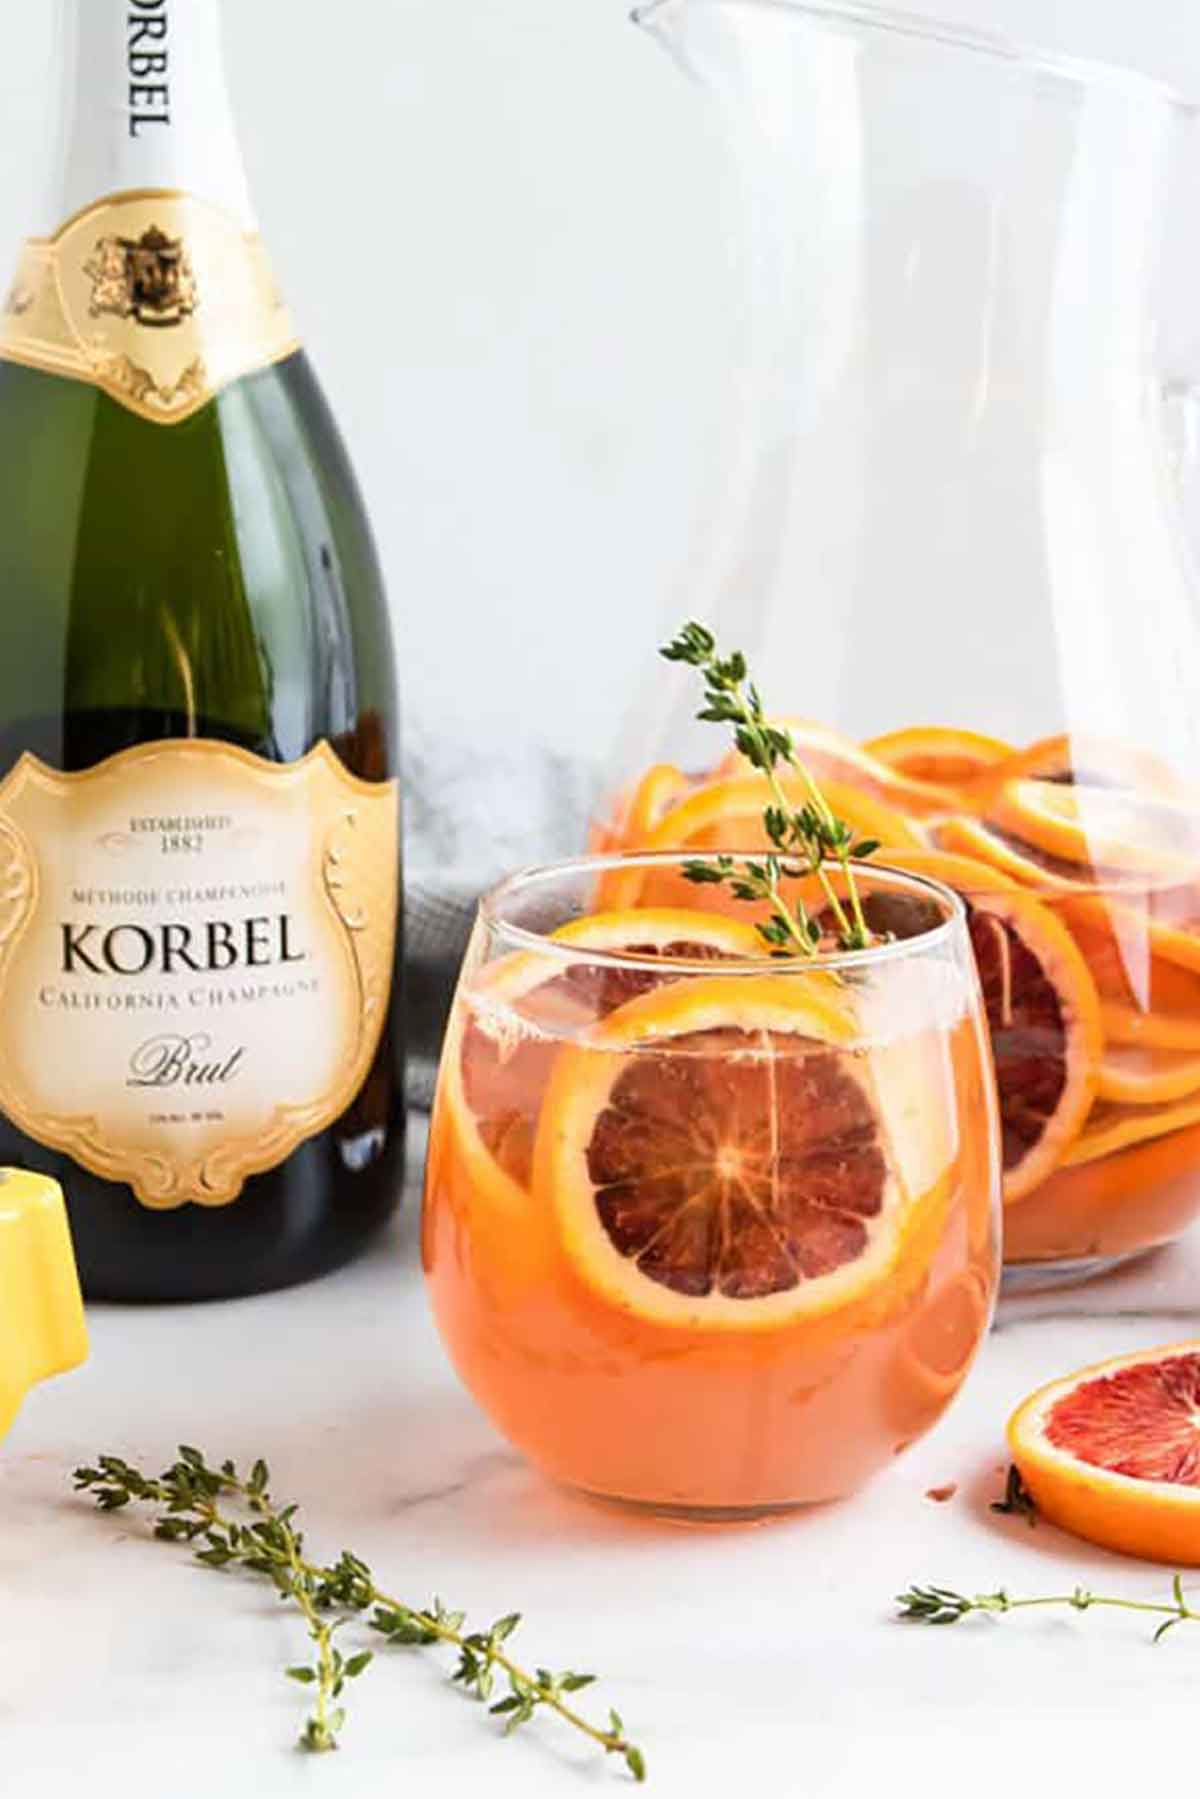 A cocktail filled with oranges and thyme beside a bottle of champagne on a marble table.